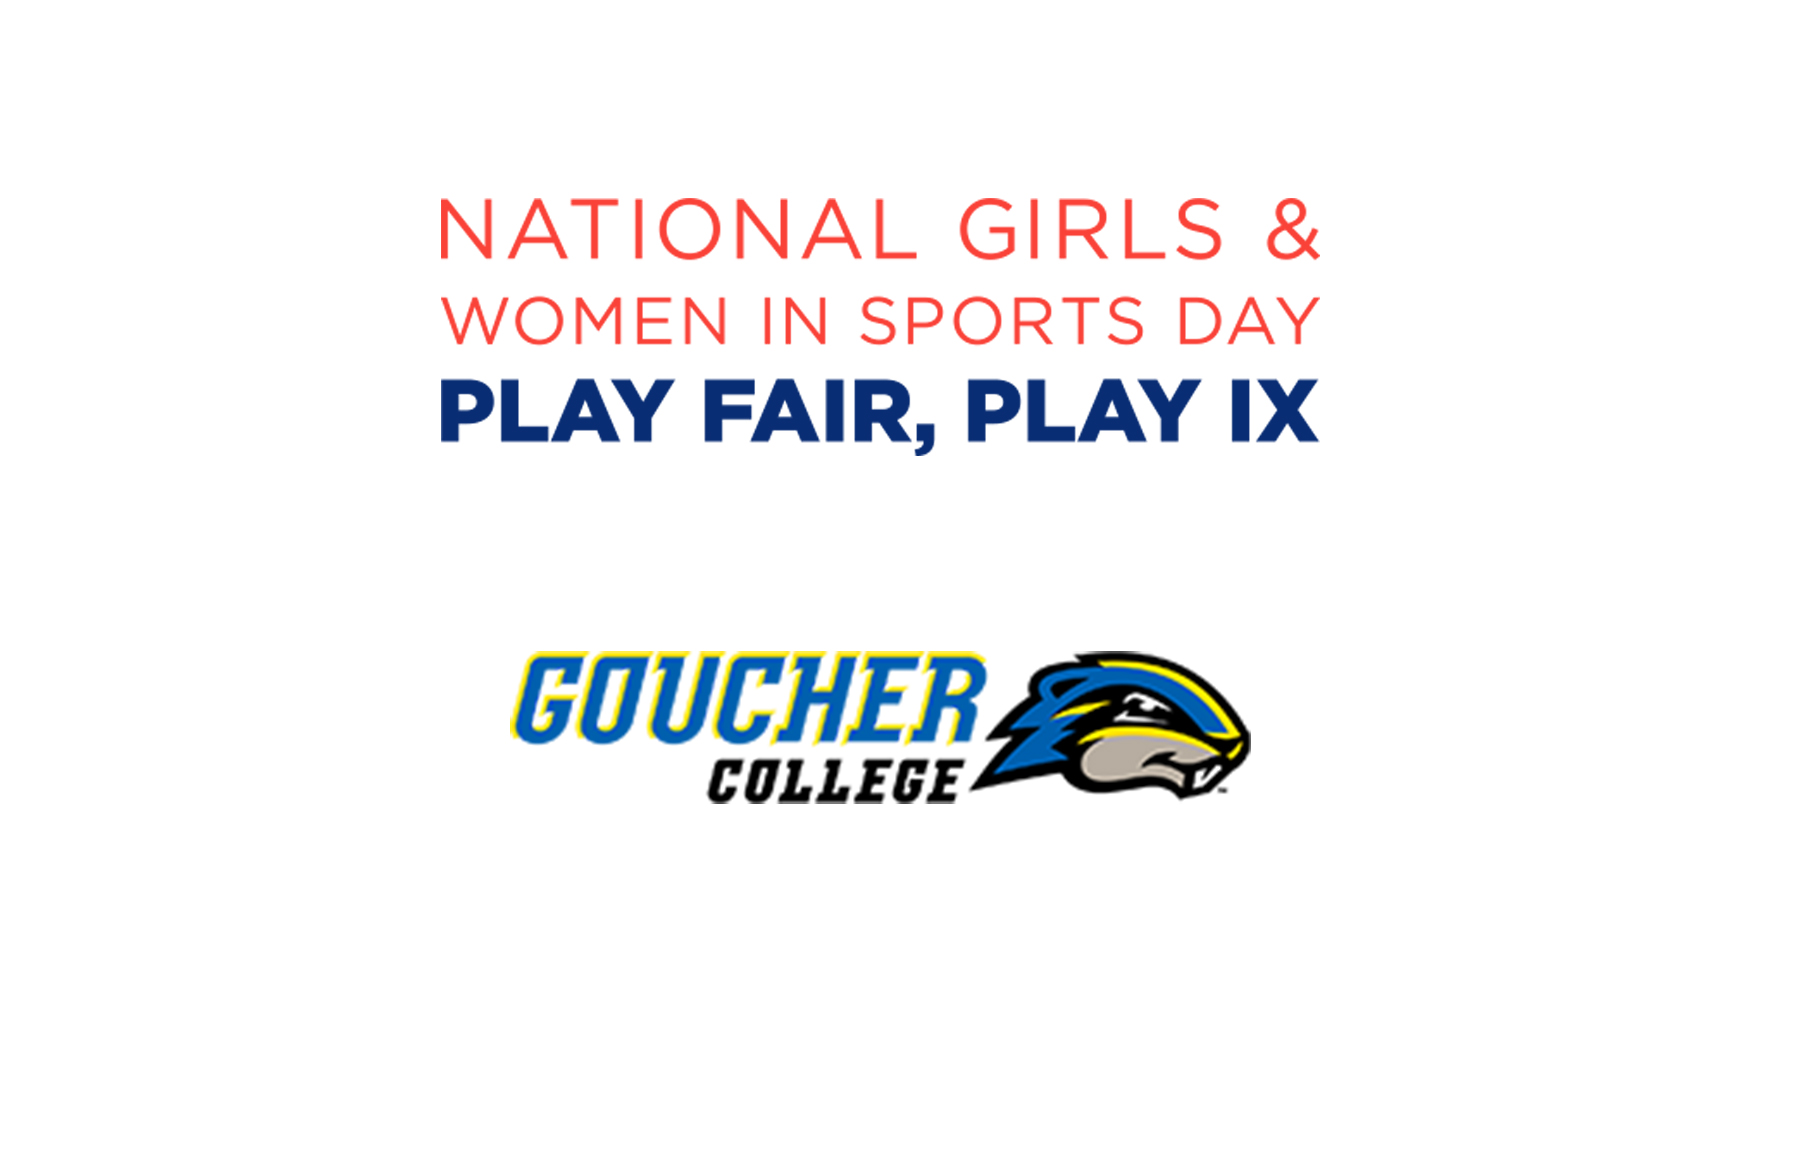 Goucher College to Host National Girls & Women in Sports Day Celebration Saturday